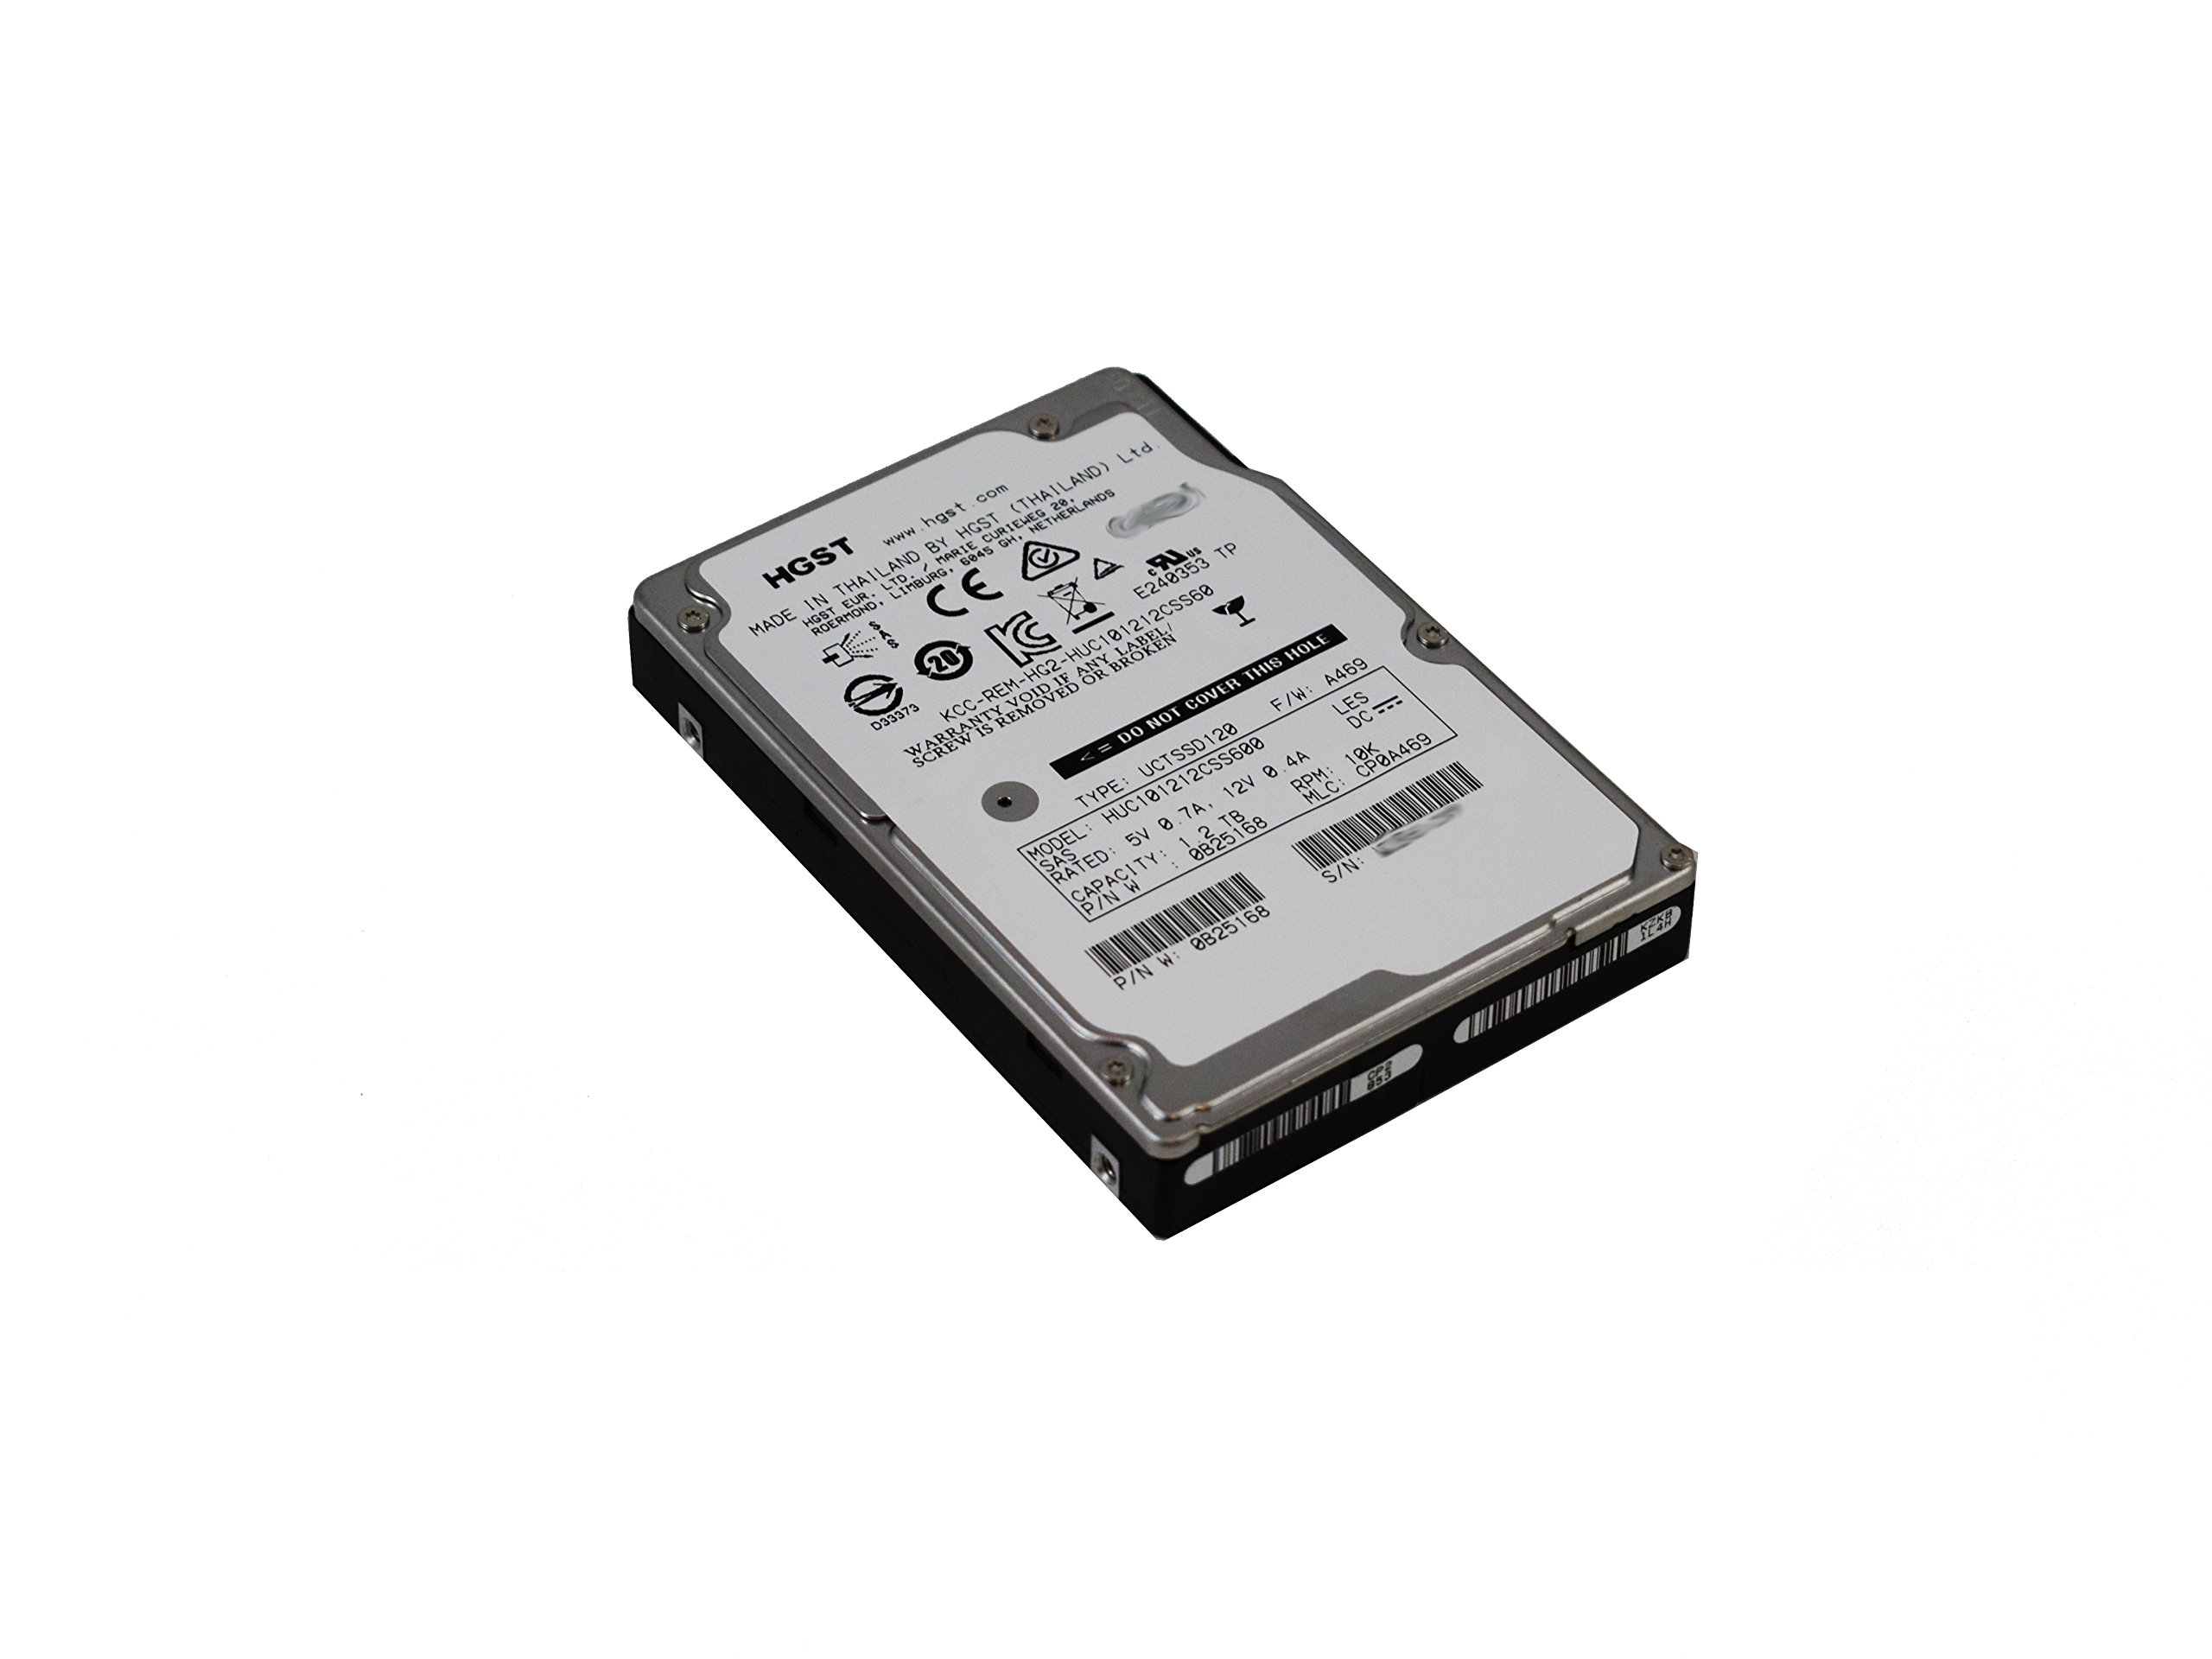 HGST Ultrastar HUC101212CSS600 0B25168 1.2TB 10K RPM SAS 6Gb/s 2.5'' SFF 64MB Cache Internal Enterprise HDD by HGST, a Western Digital Company